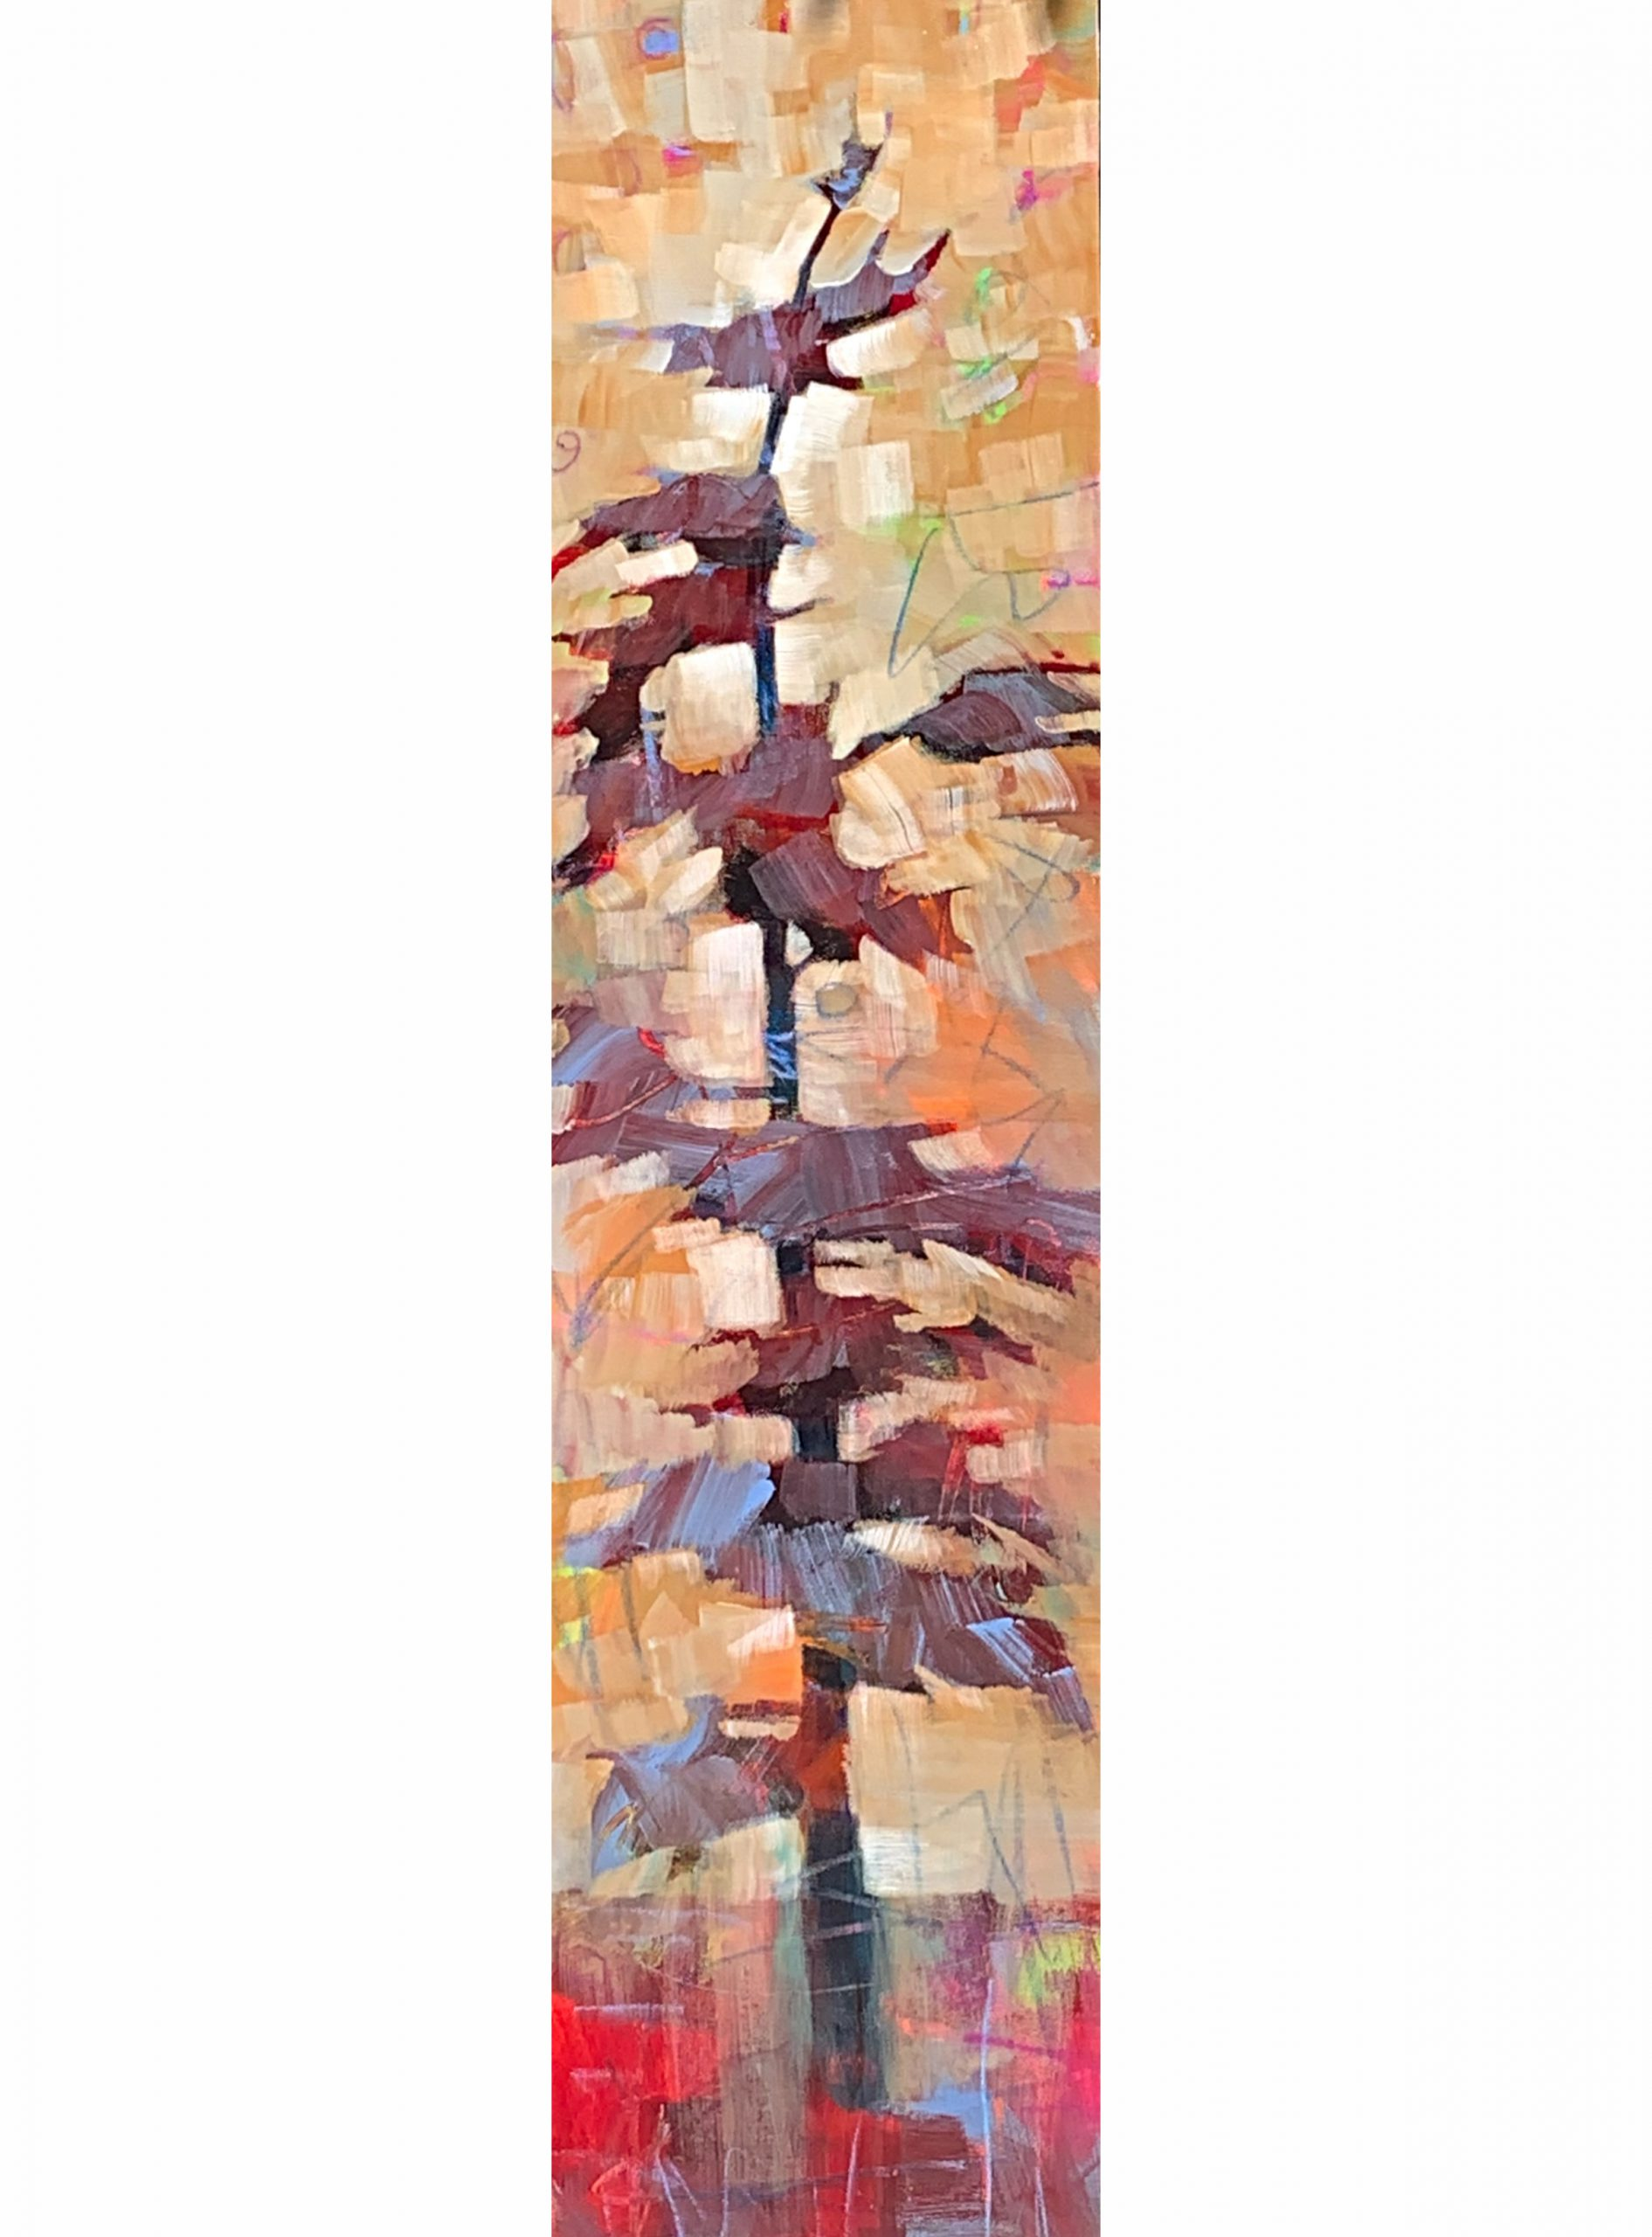 Coming Change II, mixed media tree painting by Connie Geerts | Effusion Art Gallery + Cast Glass Studio, Invermere BC